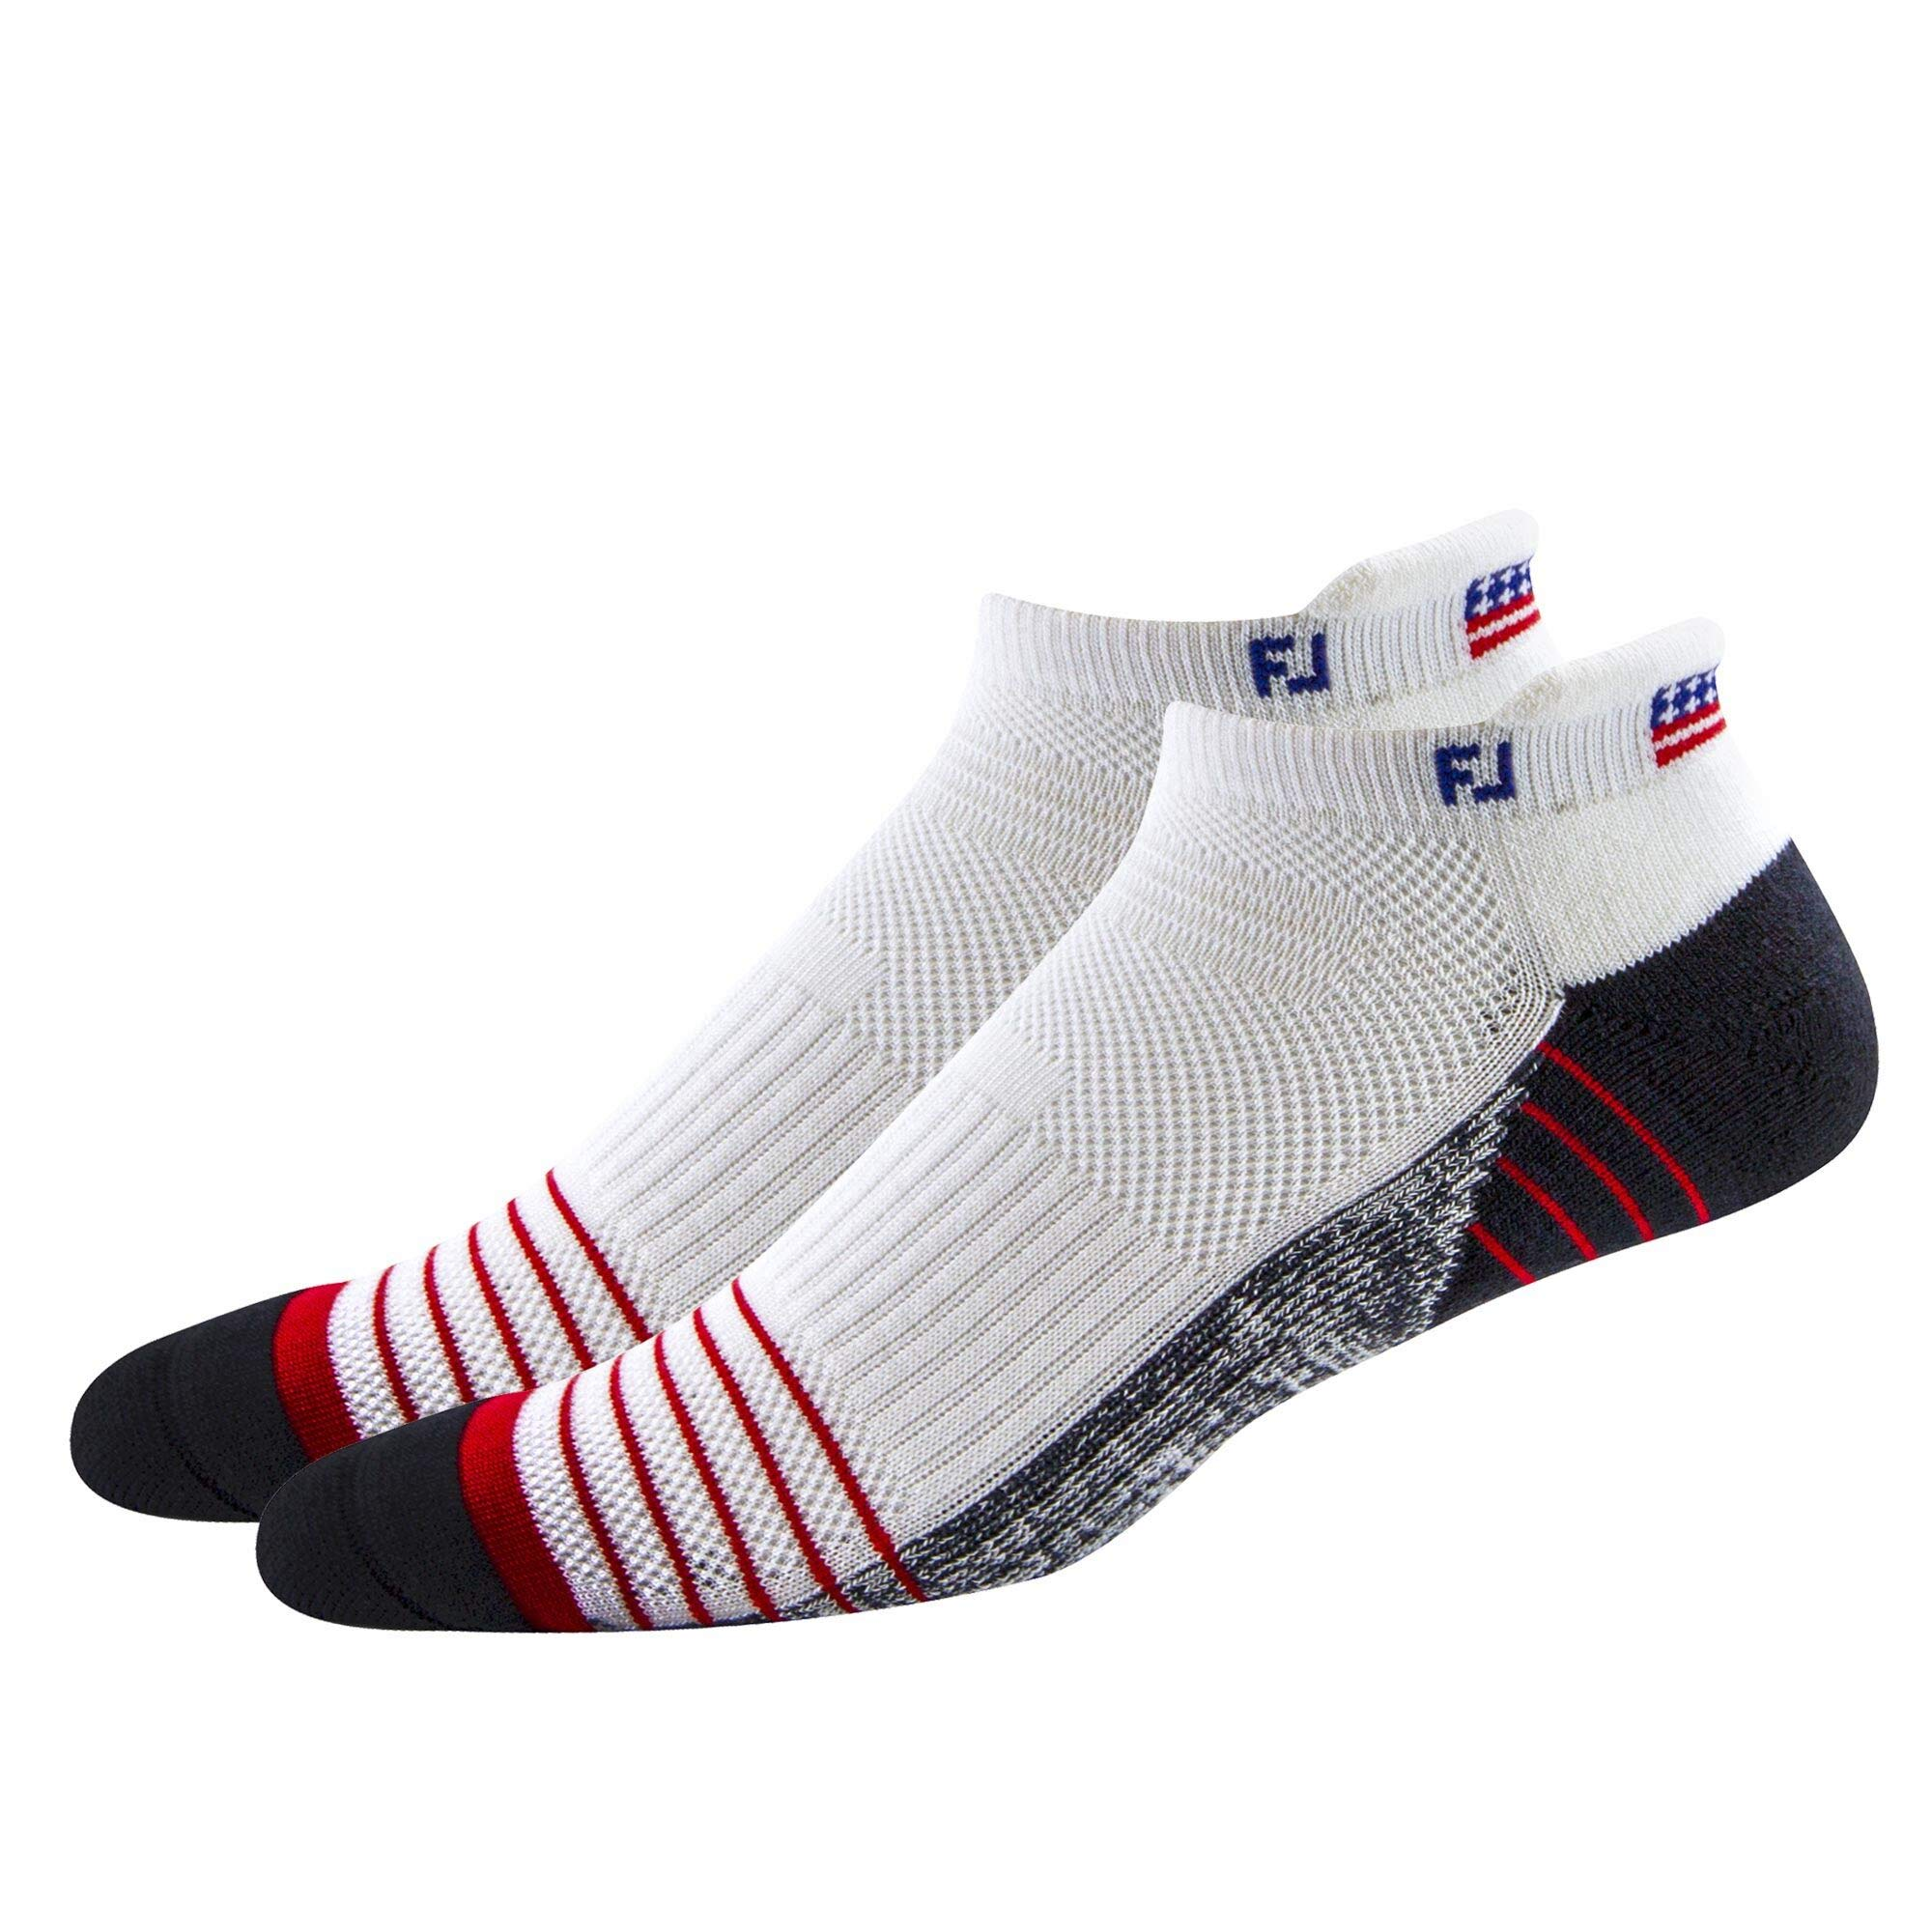 FootJoy TechSof Tour Flag Roll Tab 2-Pack Socks, White, Fits Shoe Size 7-12 by FootJoy